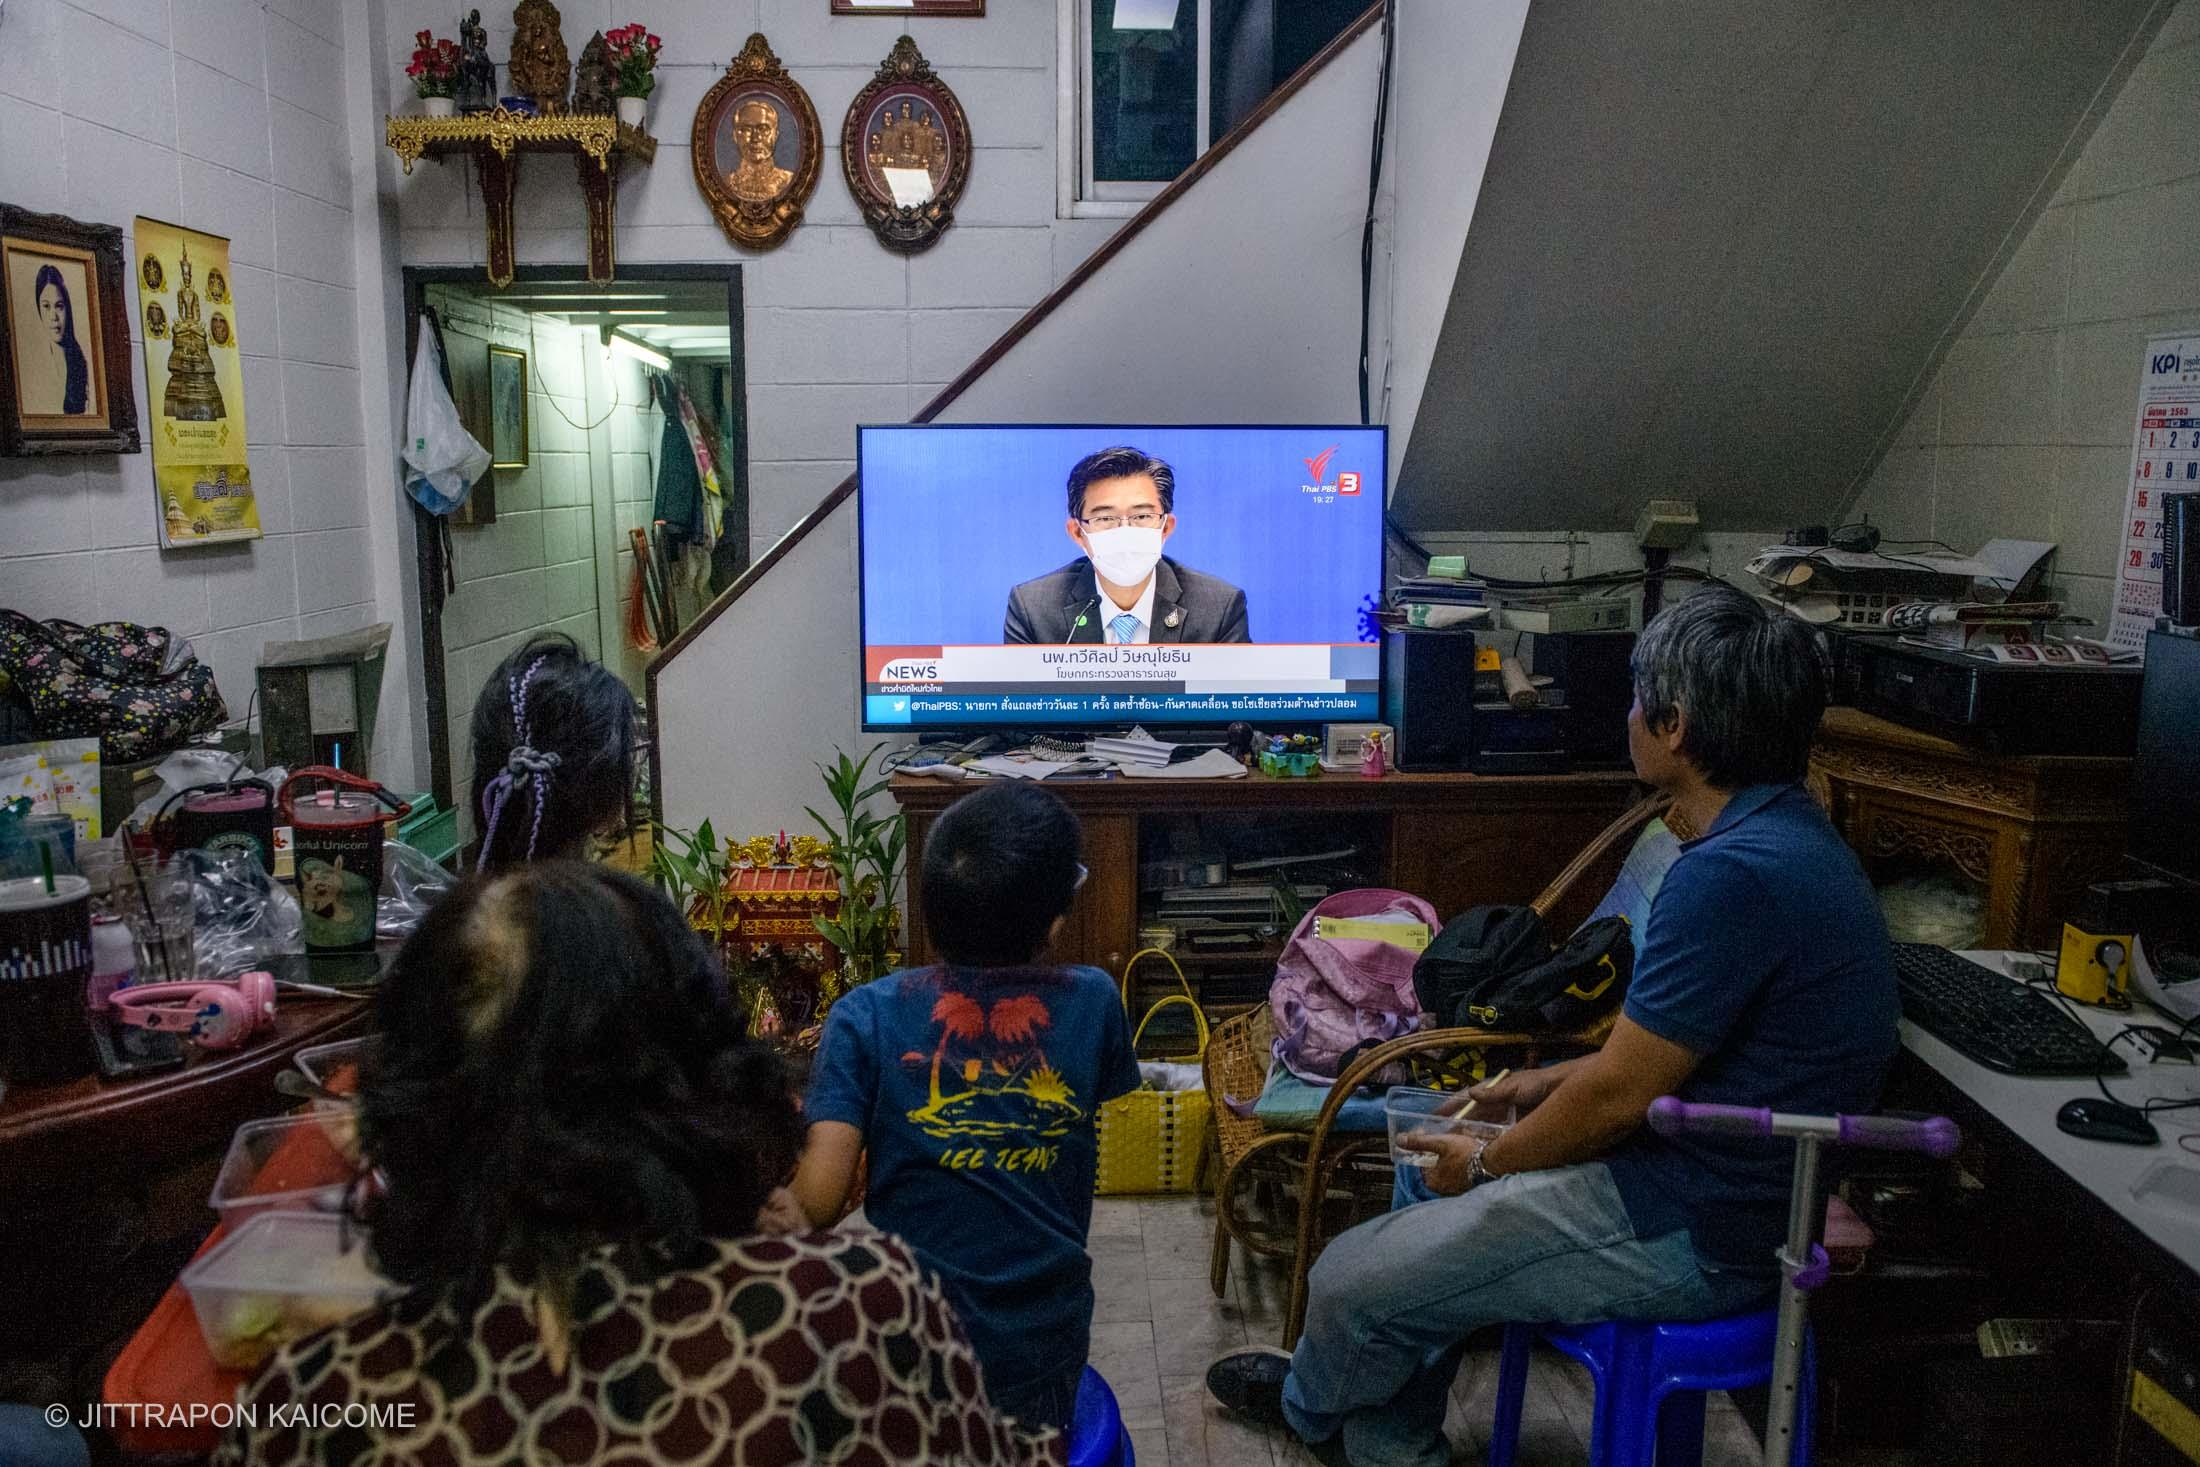 07.25 PM - Social distancing keep people isolated at home, a Chinese-Thai family in Chiang Mai gathered at the living room watching press-release on the coronavirus measure by Thai Ministry of Public Health. Chiang Mai, Thailand in March 25, 2020.